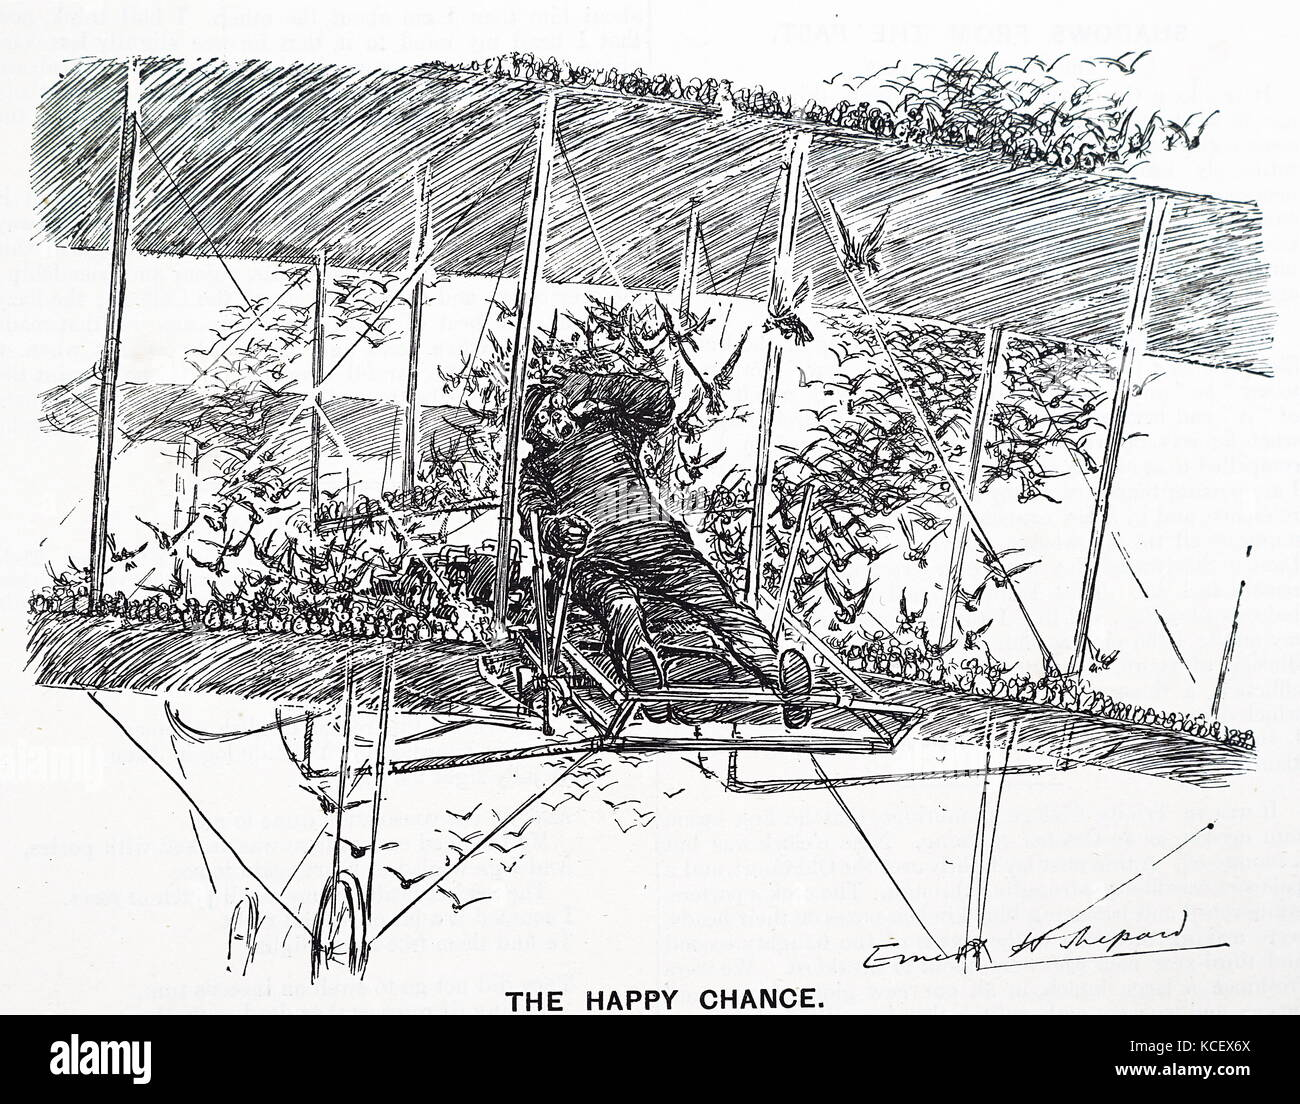 Cartoon depicting an early pilot under difficulties, by E. H. Shepard. Ernest Howard Shepard (1879-1976) an English - Stock Image